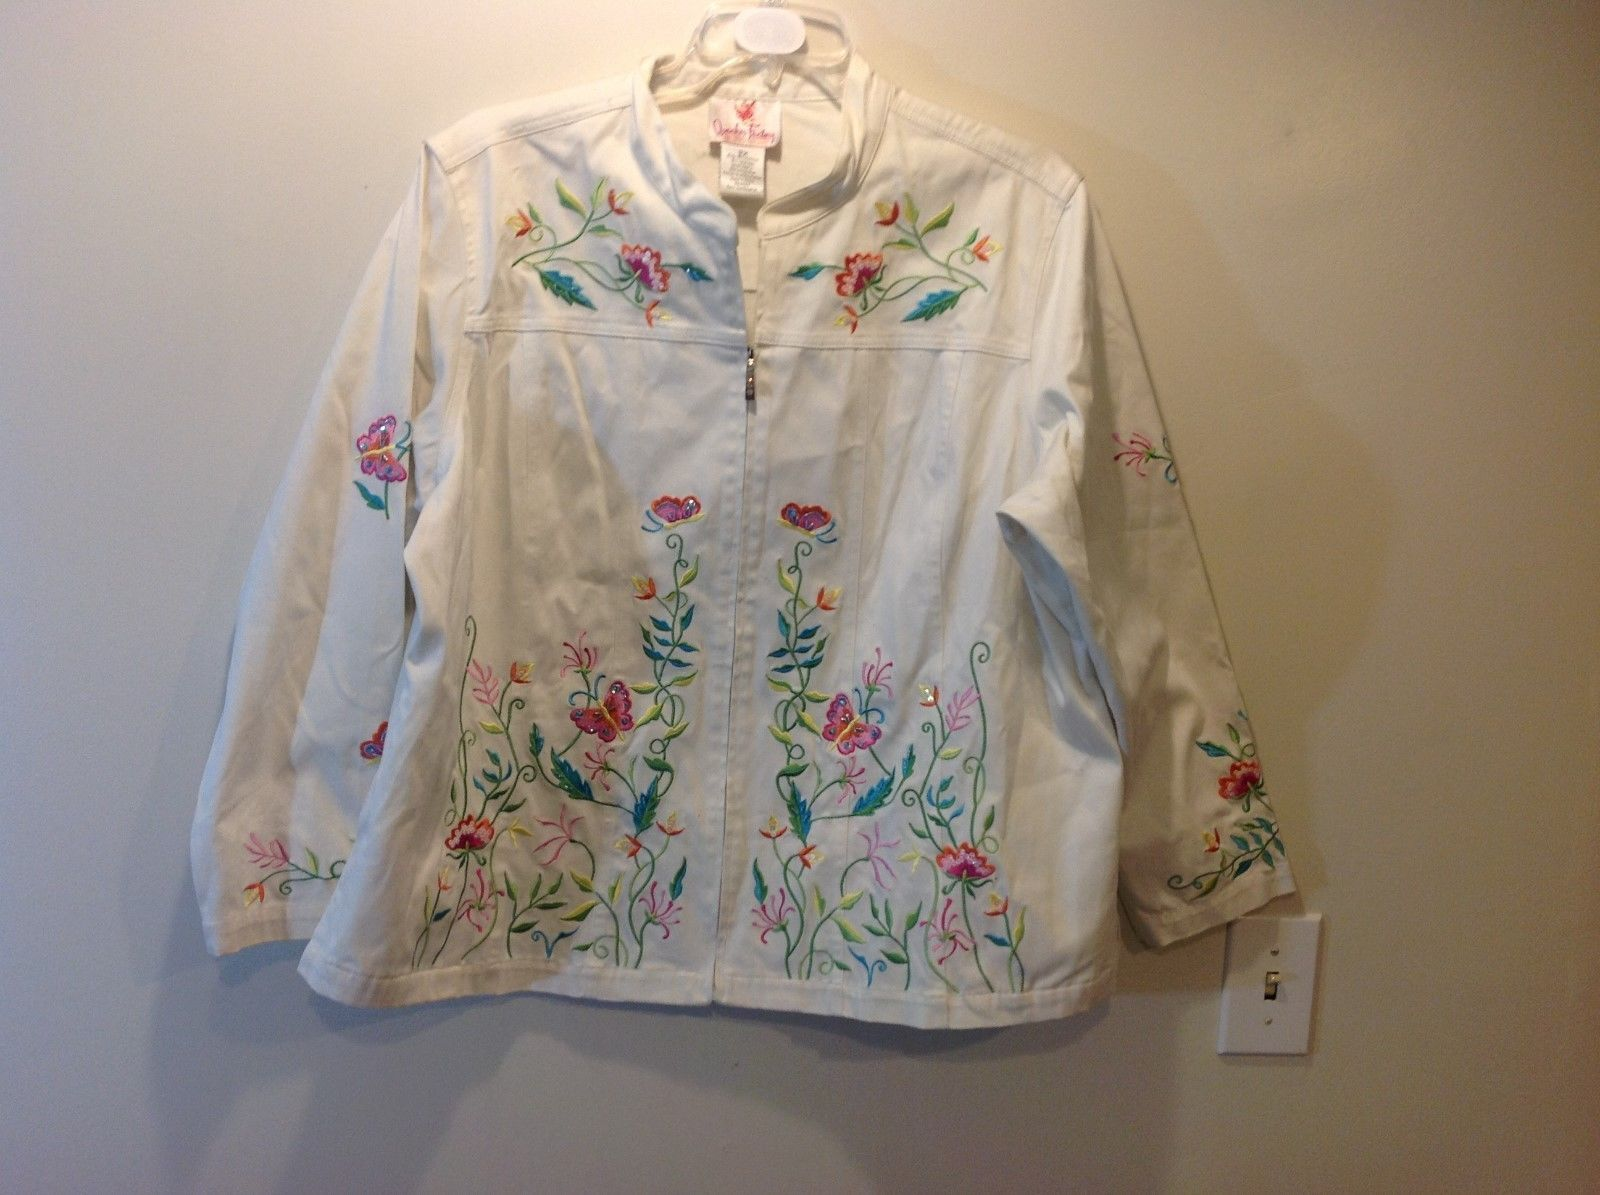 Quacker Factory White Jacket w Colorful Floral Butterfly Embroidery Sz 2X